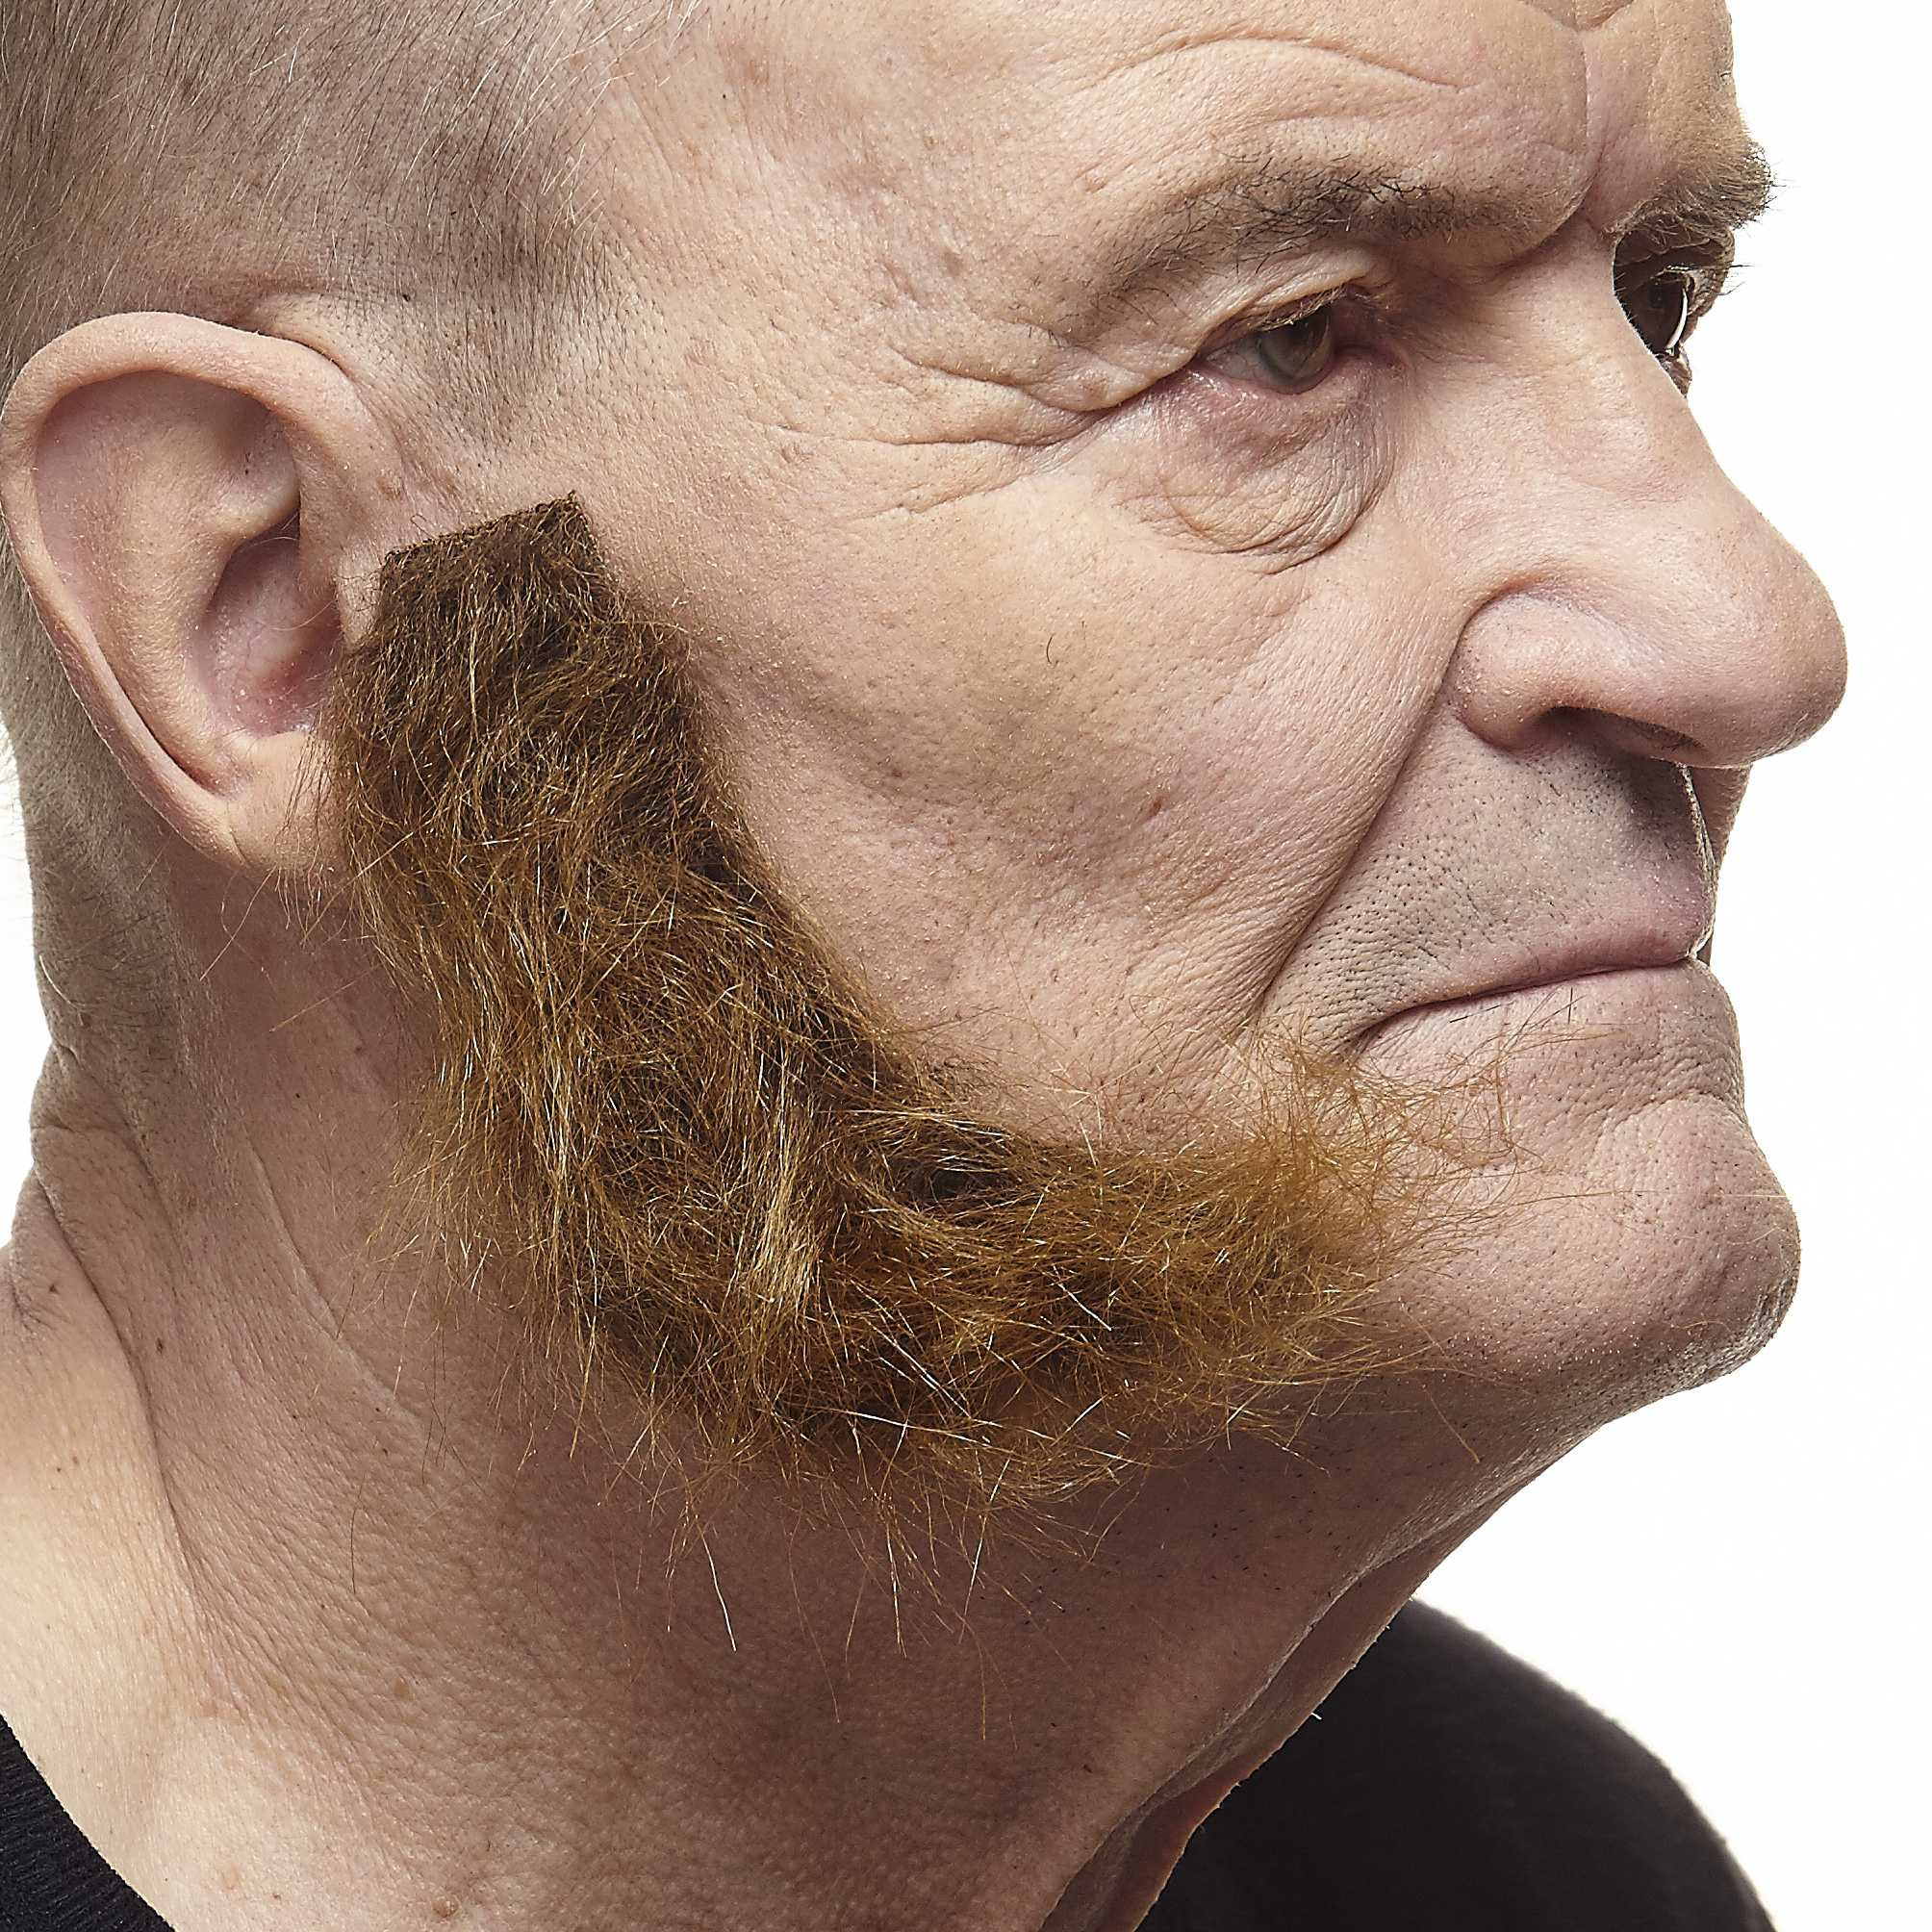 Mustaches Self Adhesive, Novelty, Realistic, Fake, L Shaped Mutton Chops Sideburns, Brown Color